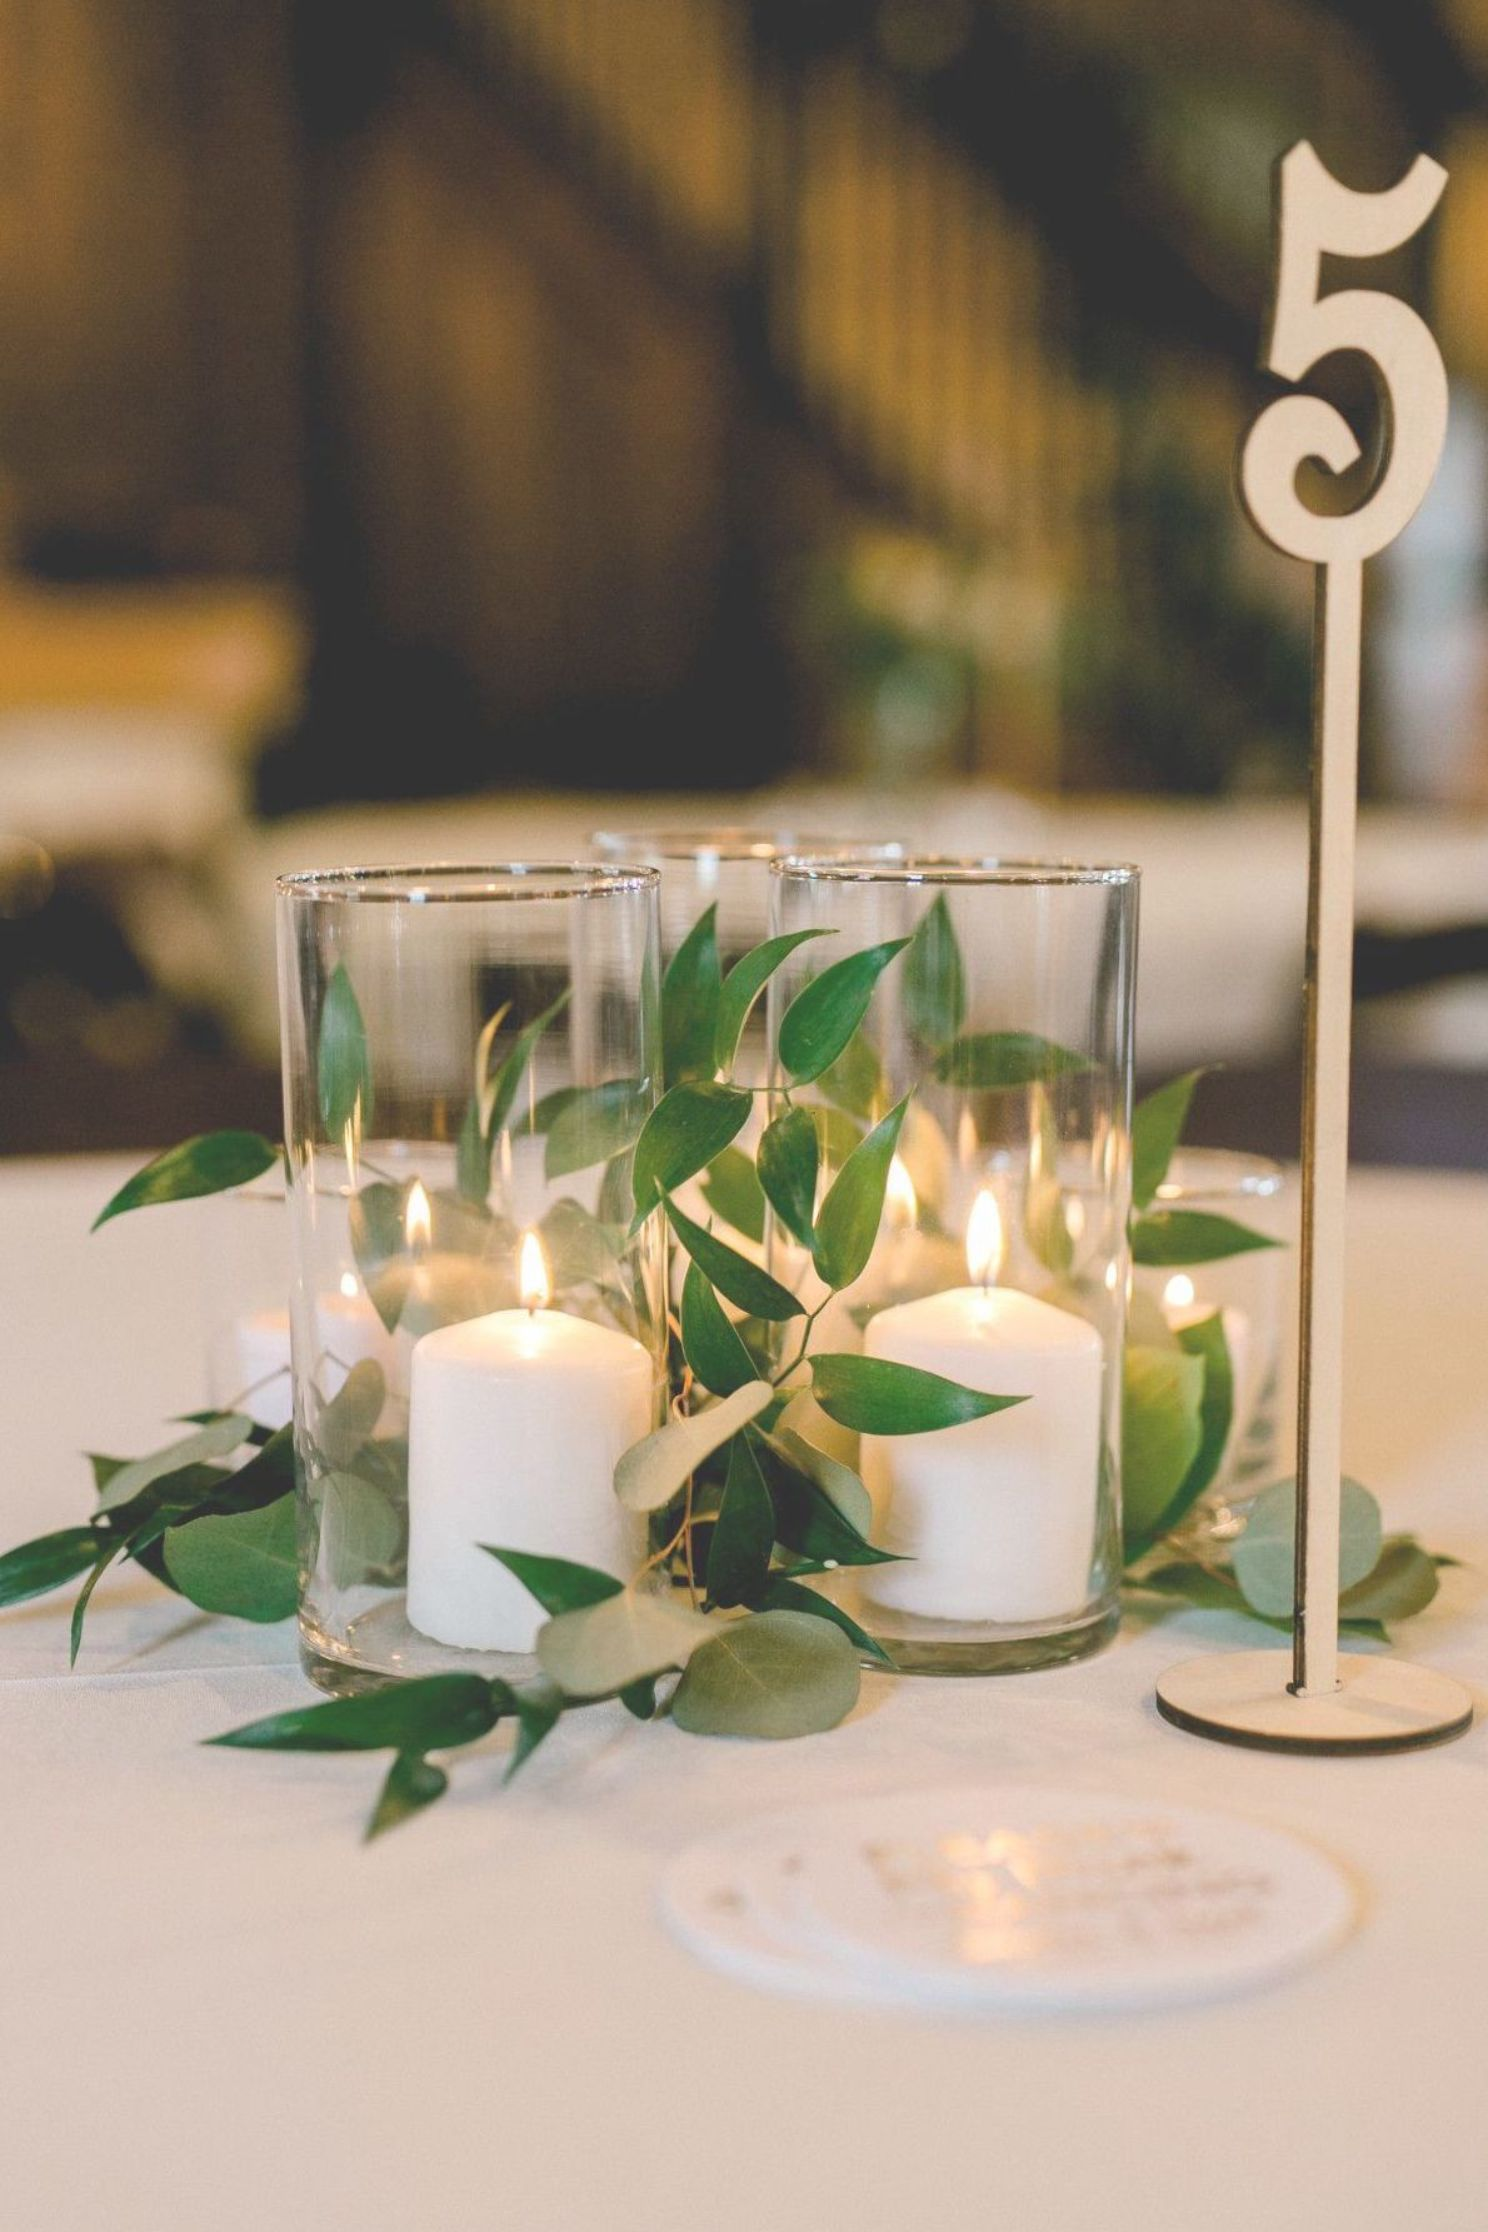 Natural Bohemian Wedding Centerpiece Candle Greenery Gold Wedding Centerpi Gold Table Numbers Wedding Wedding Candles Table Candle Wedding Centerpieces